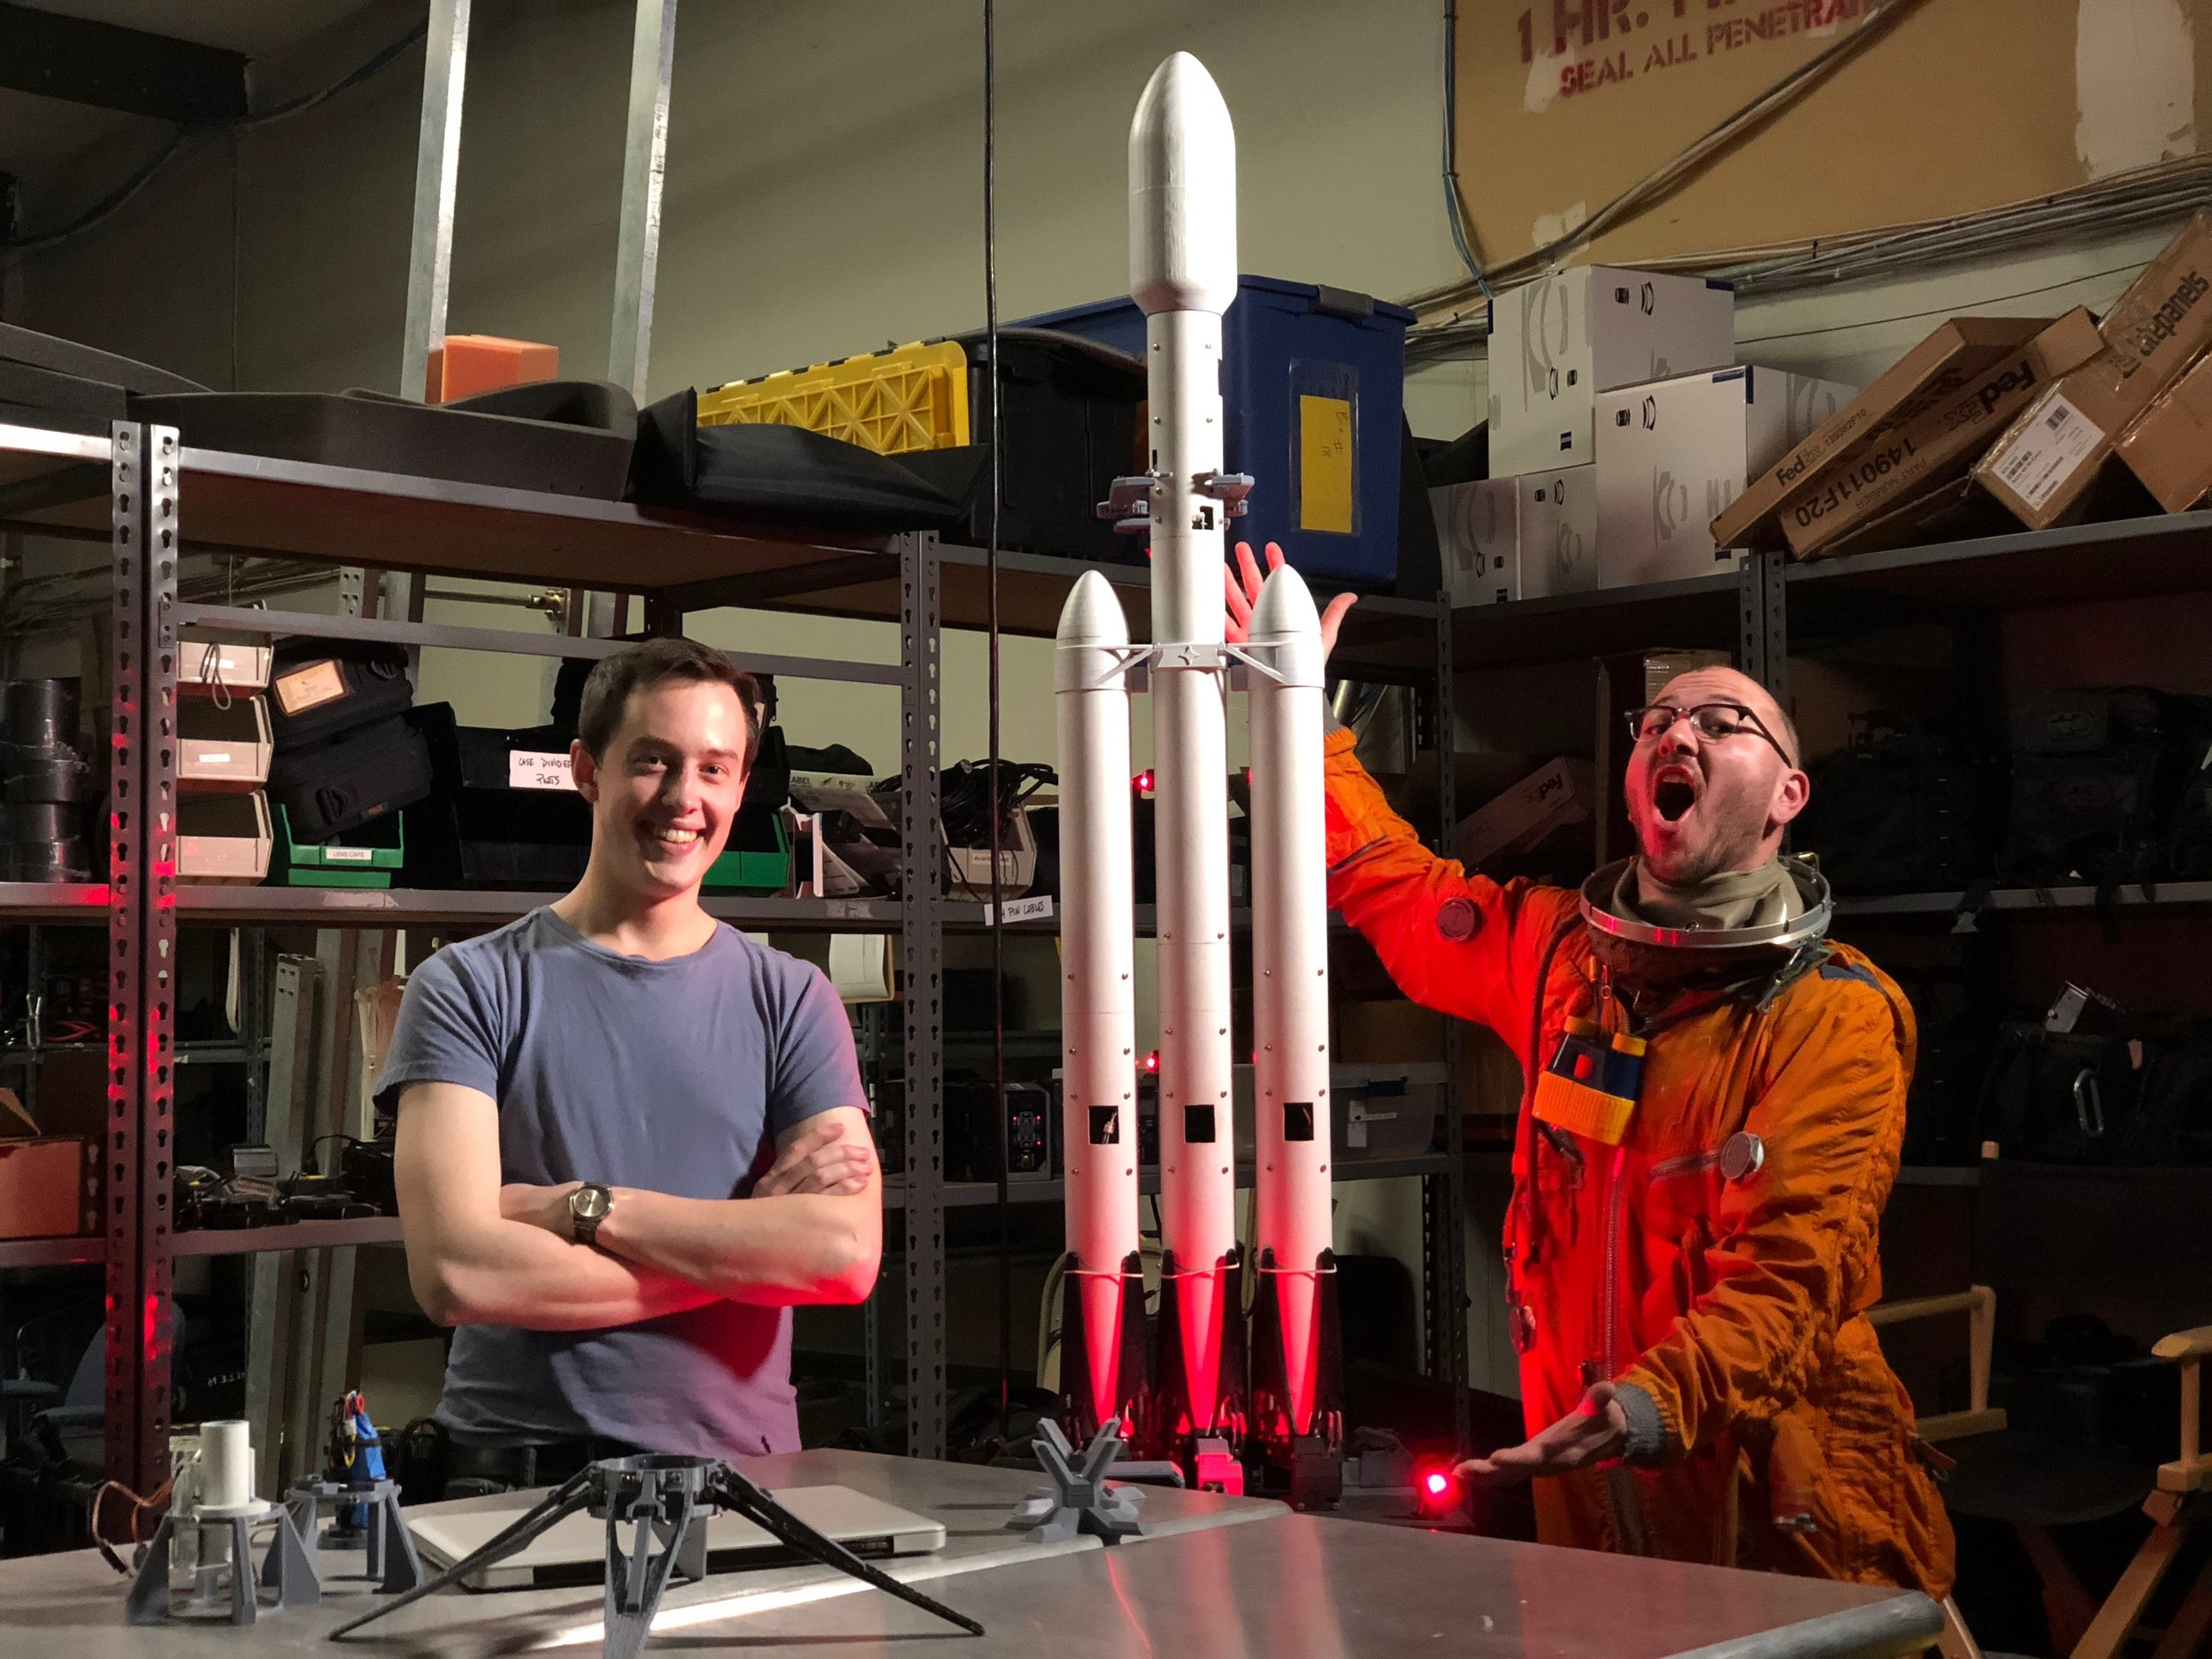 Myself, the Falcon Heavy model, and Tim Dodd, The Everyday Astronaut